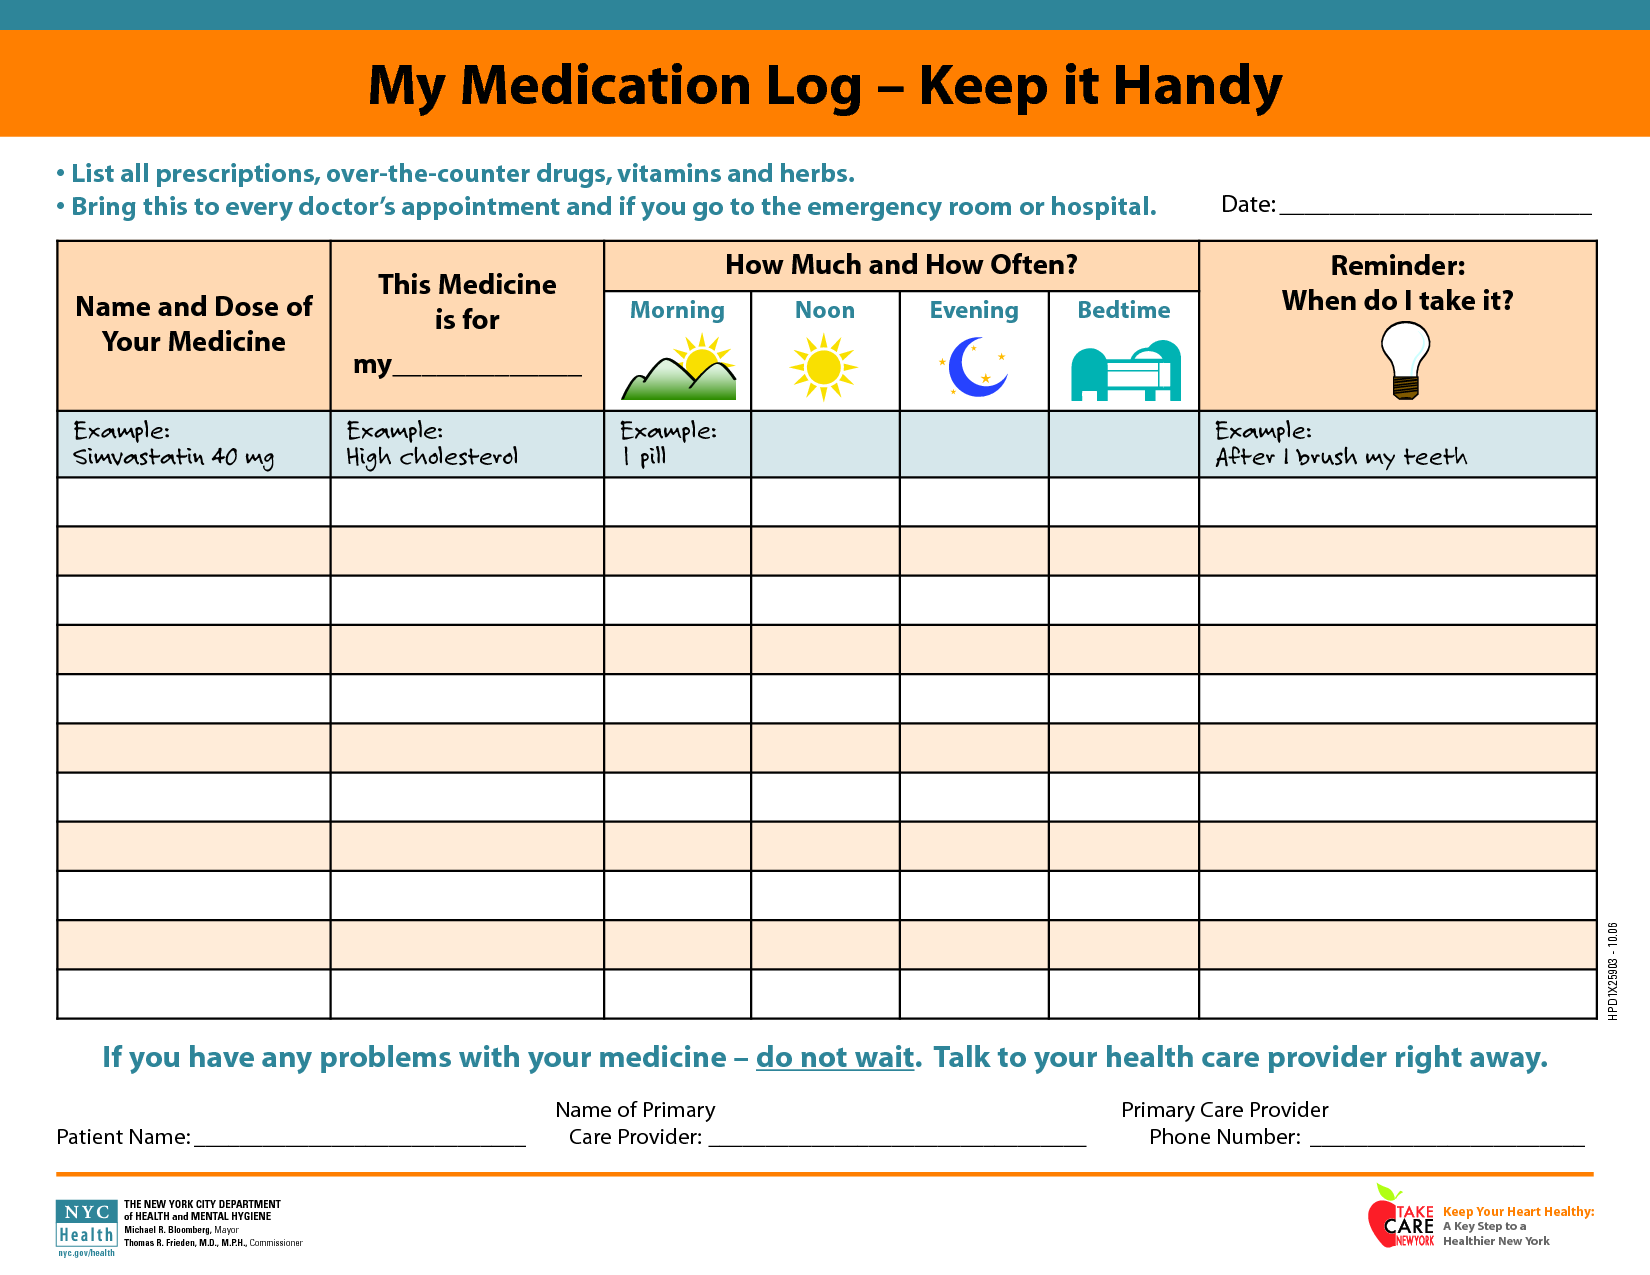 medicine picture schedule | My Medication Log - Keep it Handy ...